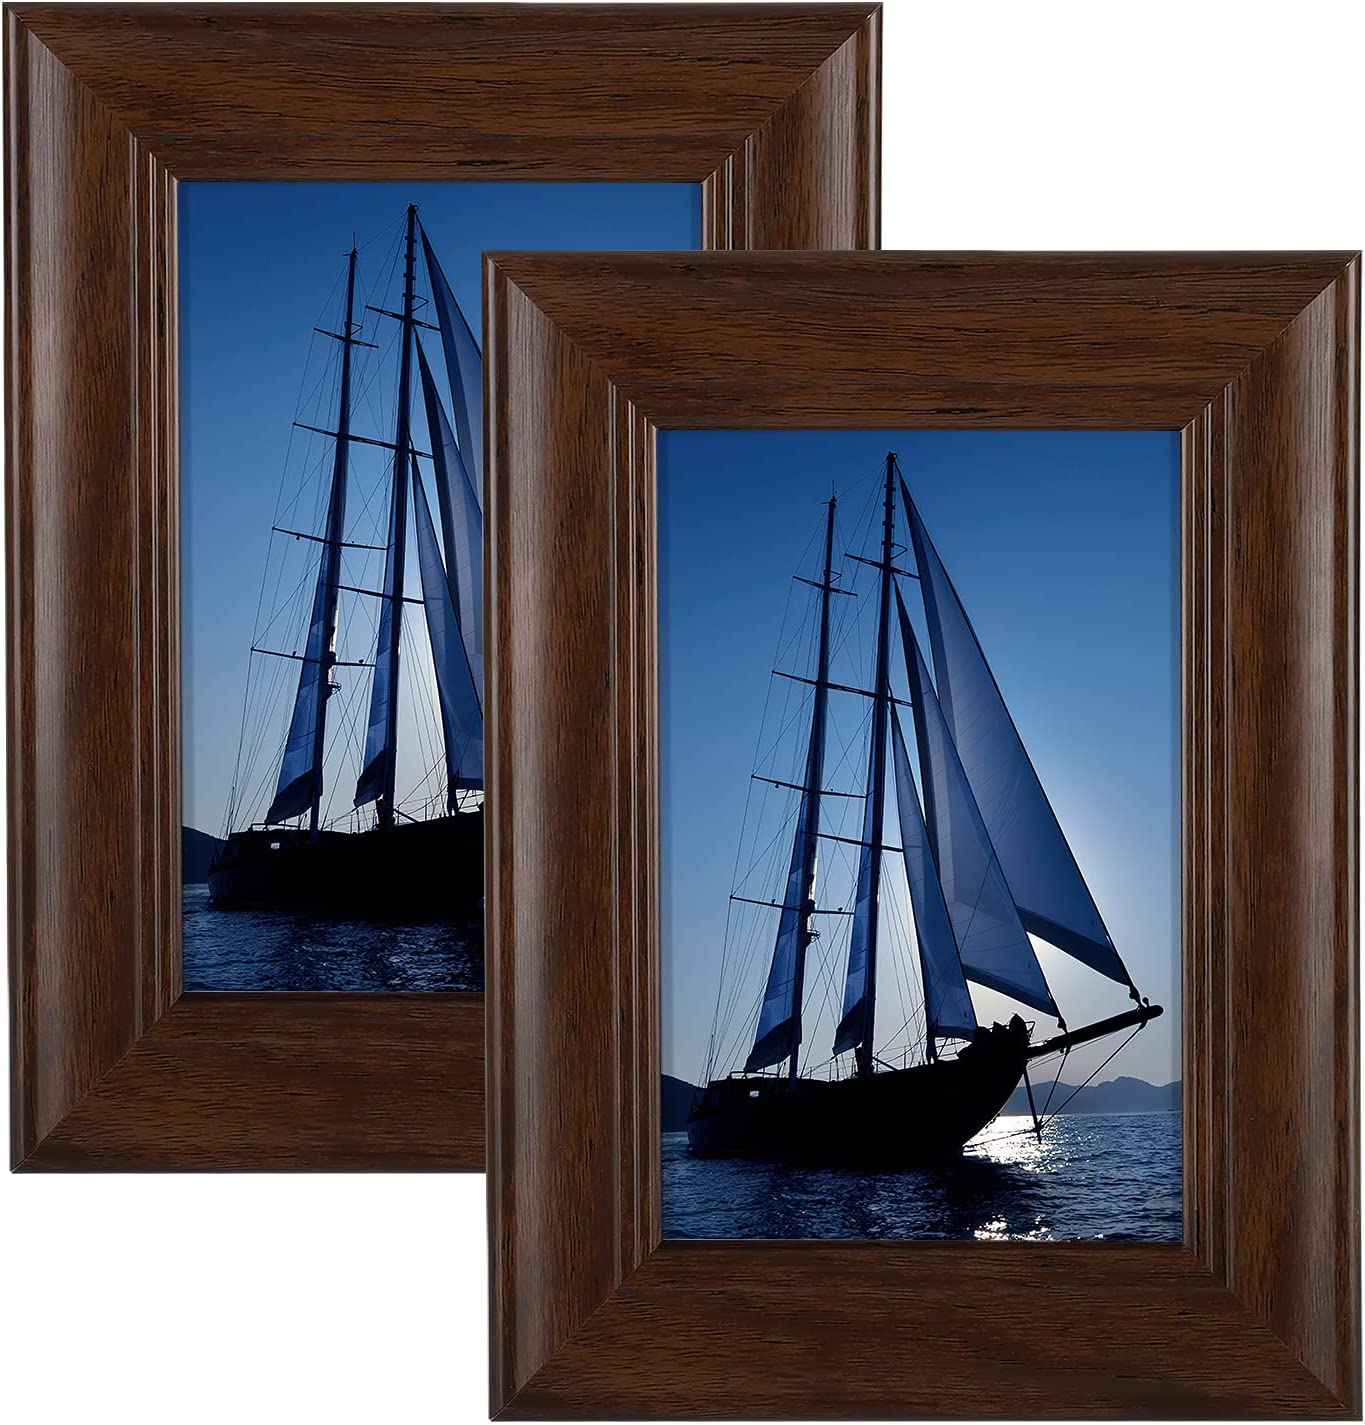 APPLE-TREE 4x6 Picture Frame Set of 2, Photo Frames High Definition Plexiglass for Tabletop or Wall Display & Home Décor, Brown